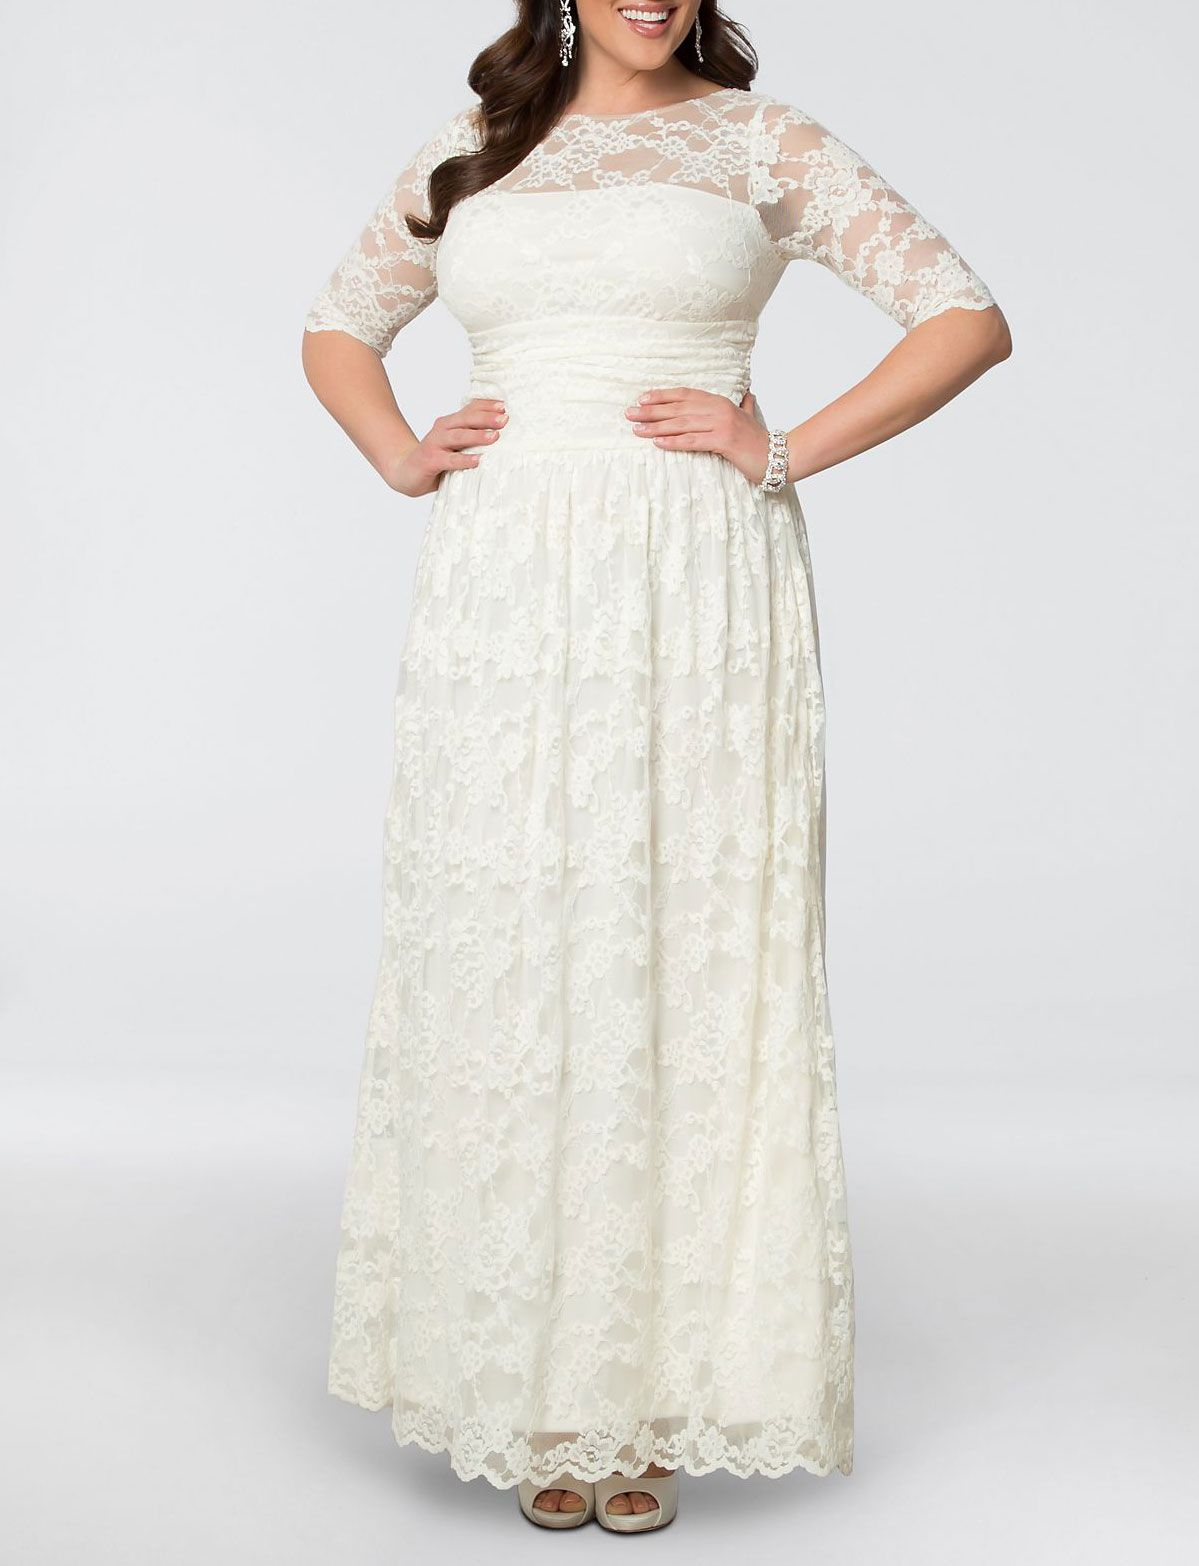 Kiyonna Lace Illusion Plus Size Wedding Gown